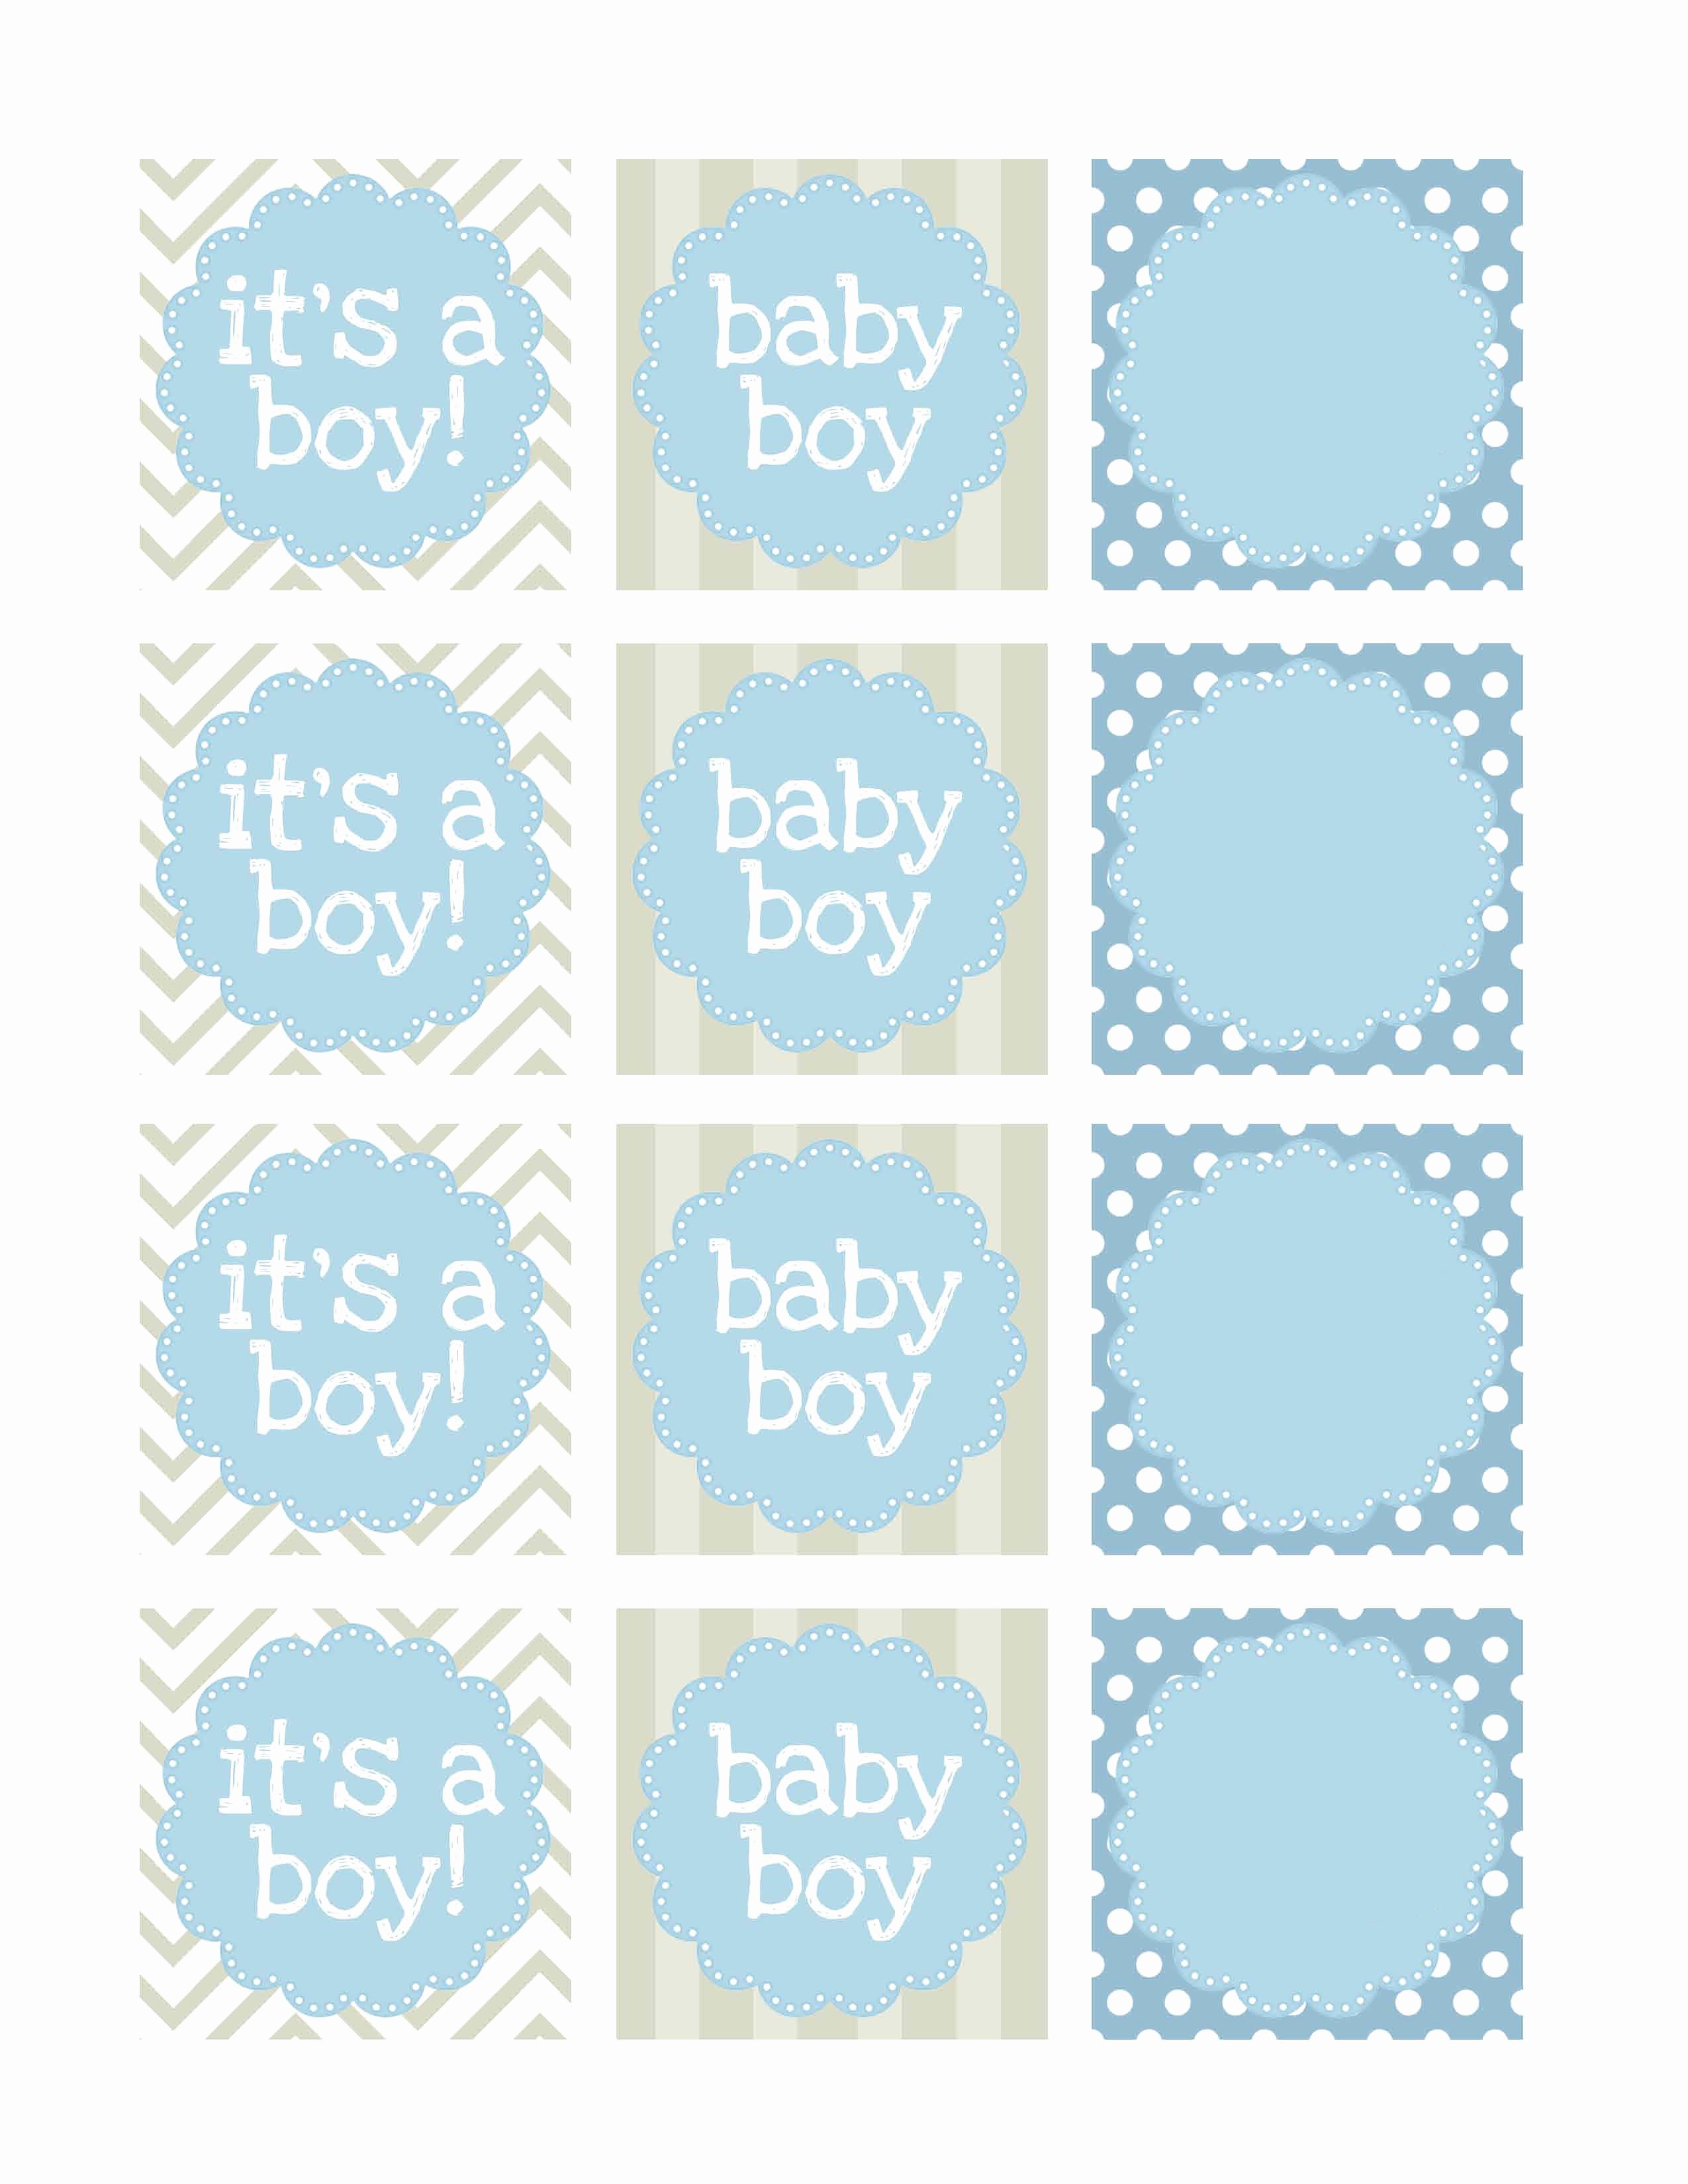 Baby Shower Tags Printable Beautiful Boy Baby Shower Free Printables How to Nest for Less™